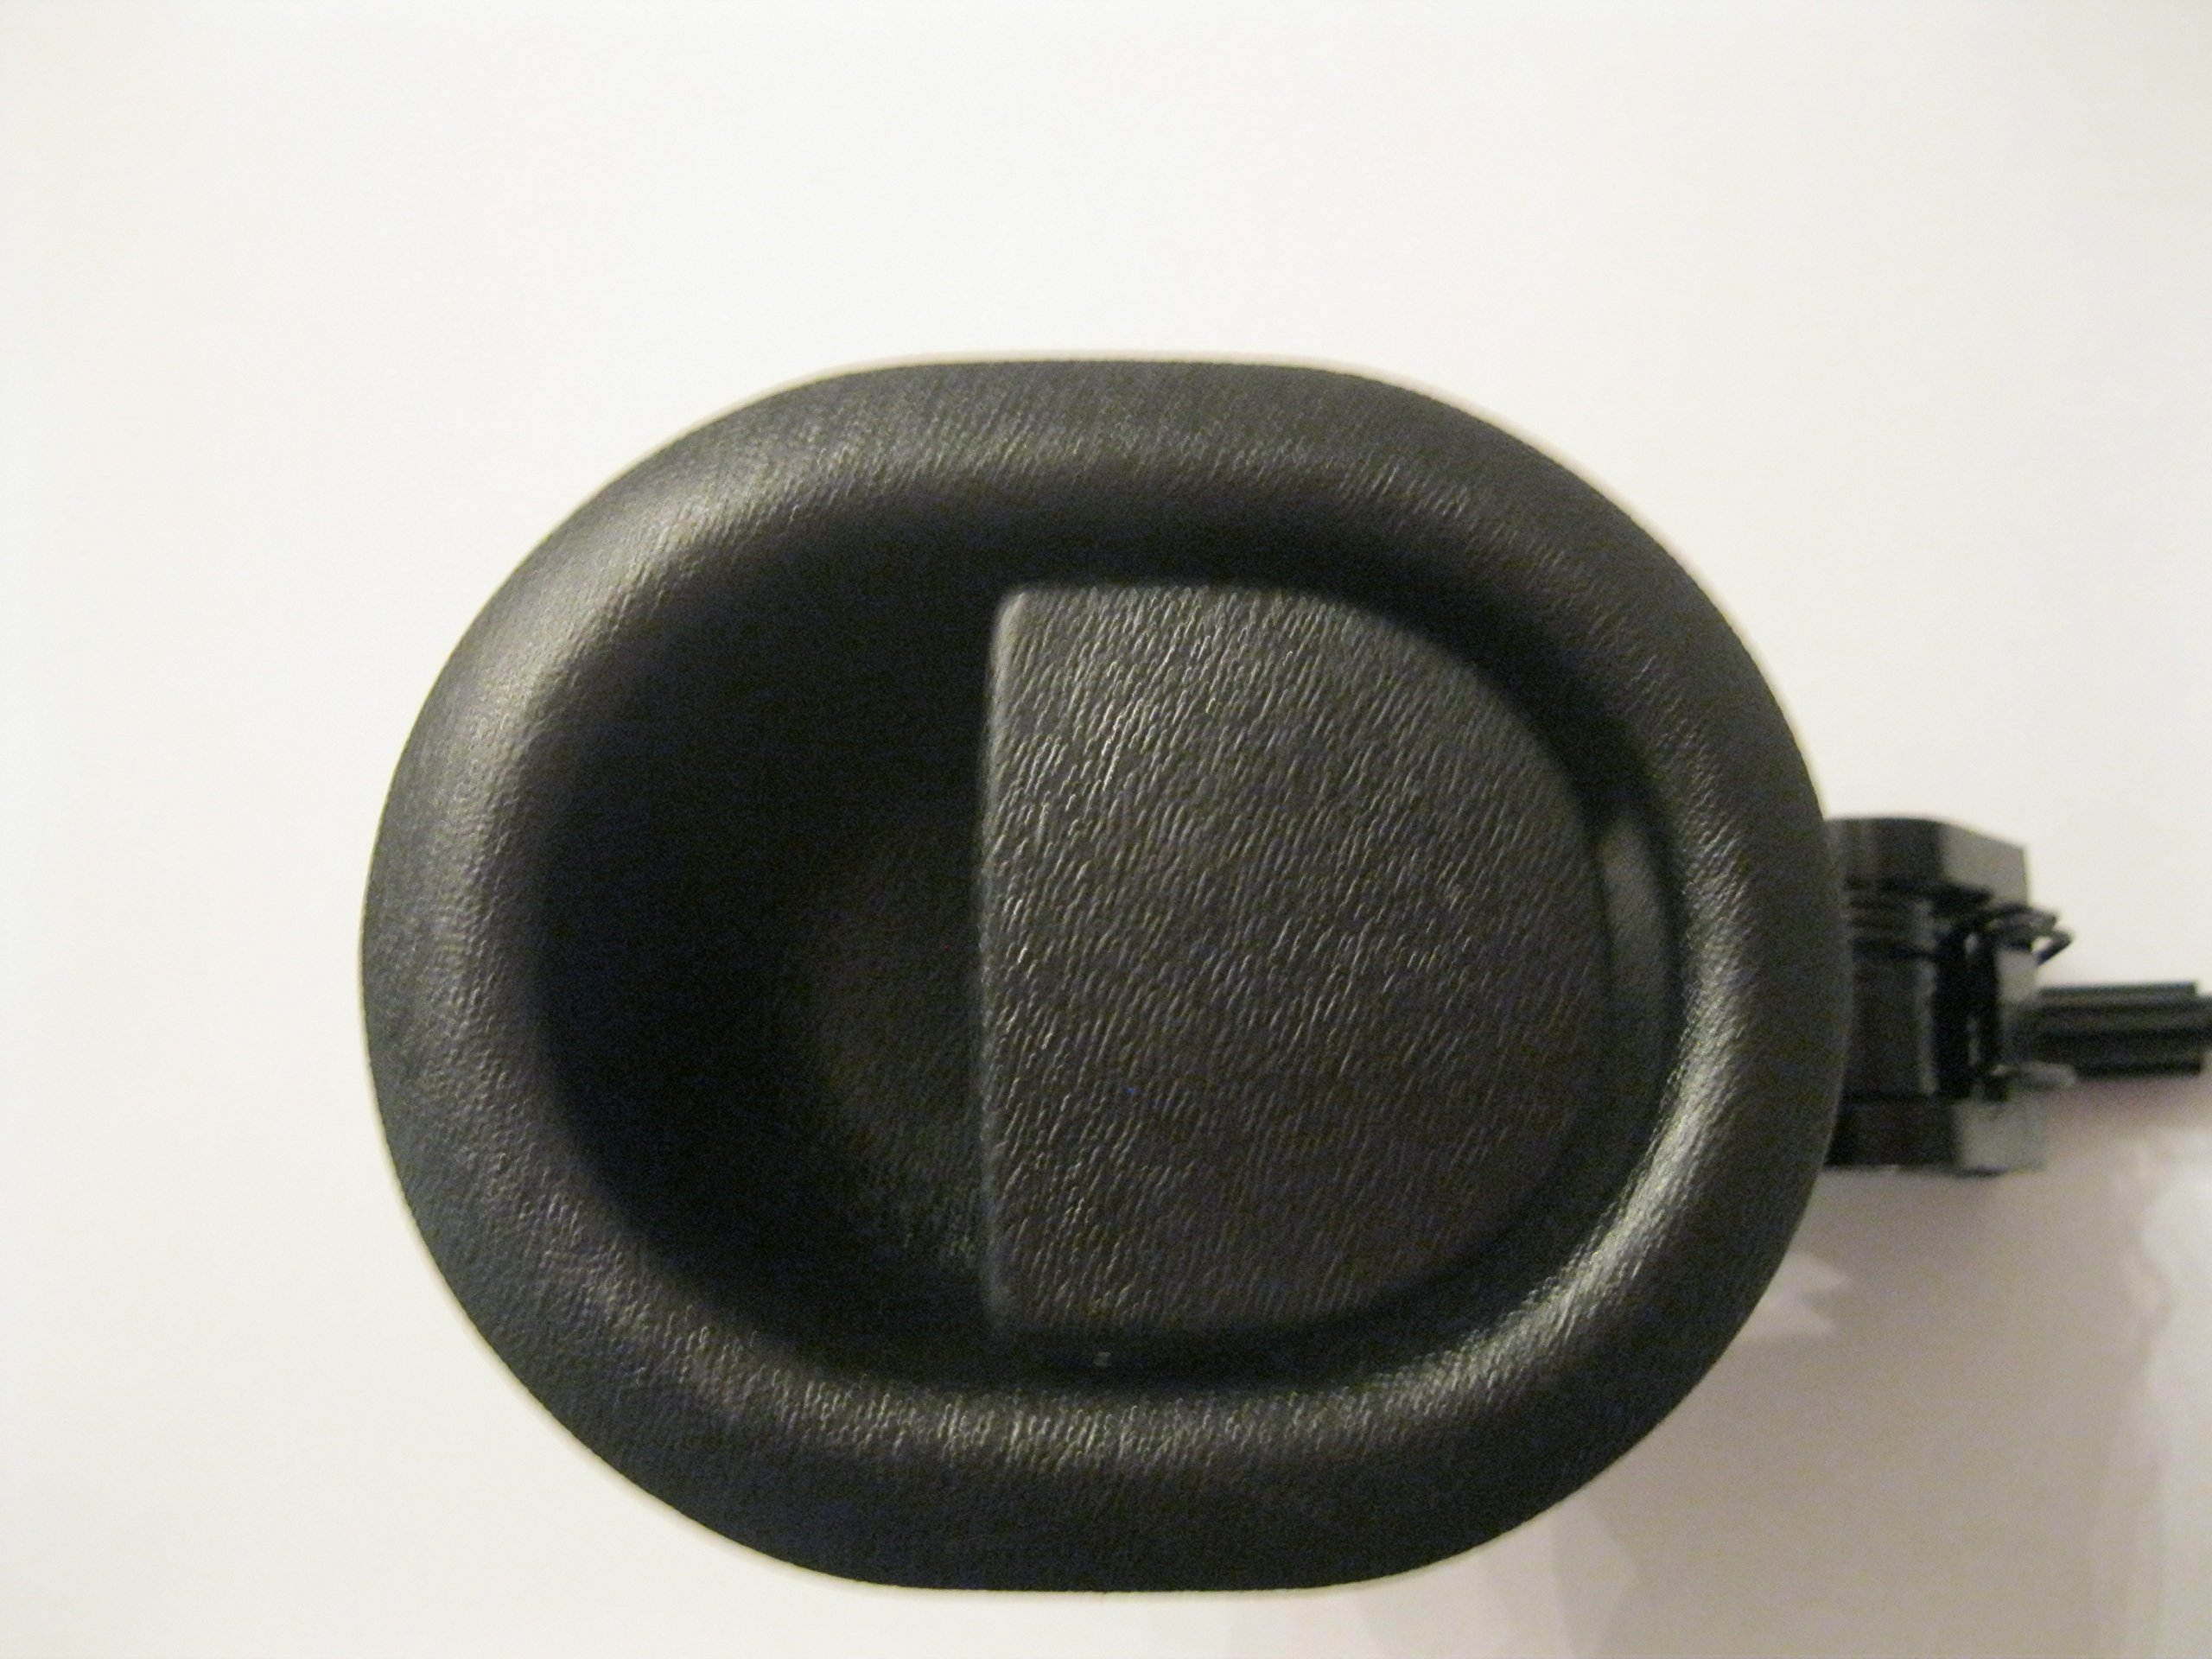 Recliner Parts: Ashley Recliner Pull Handle Cable Release